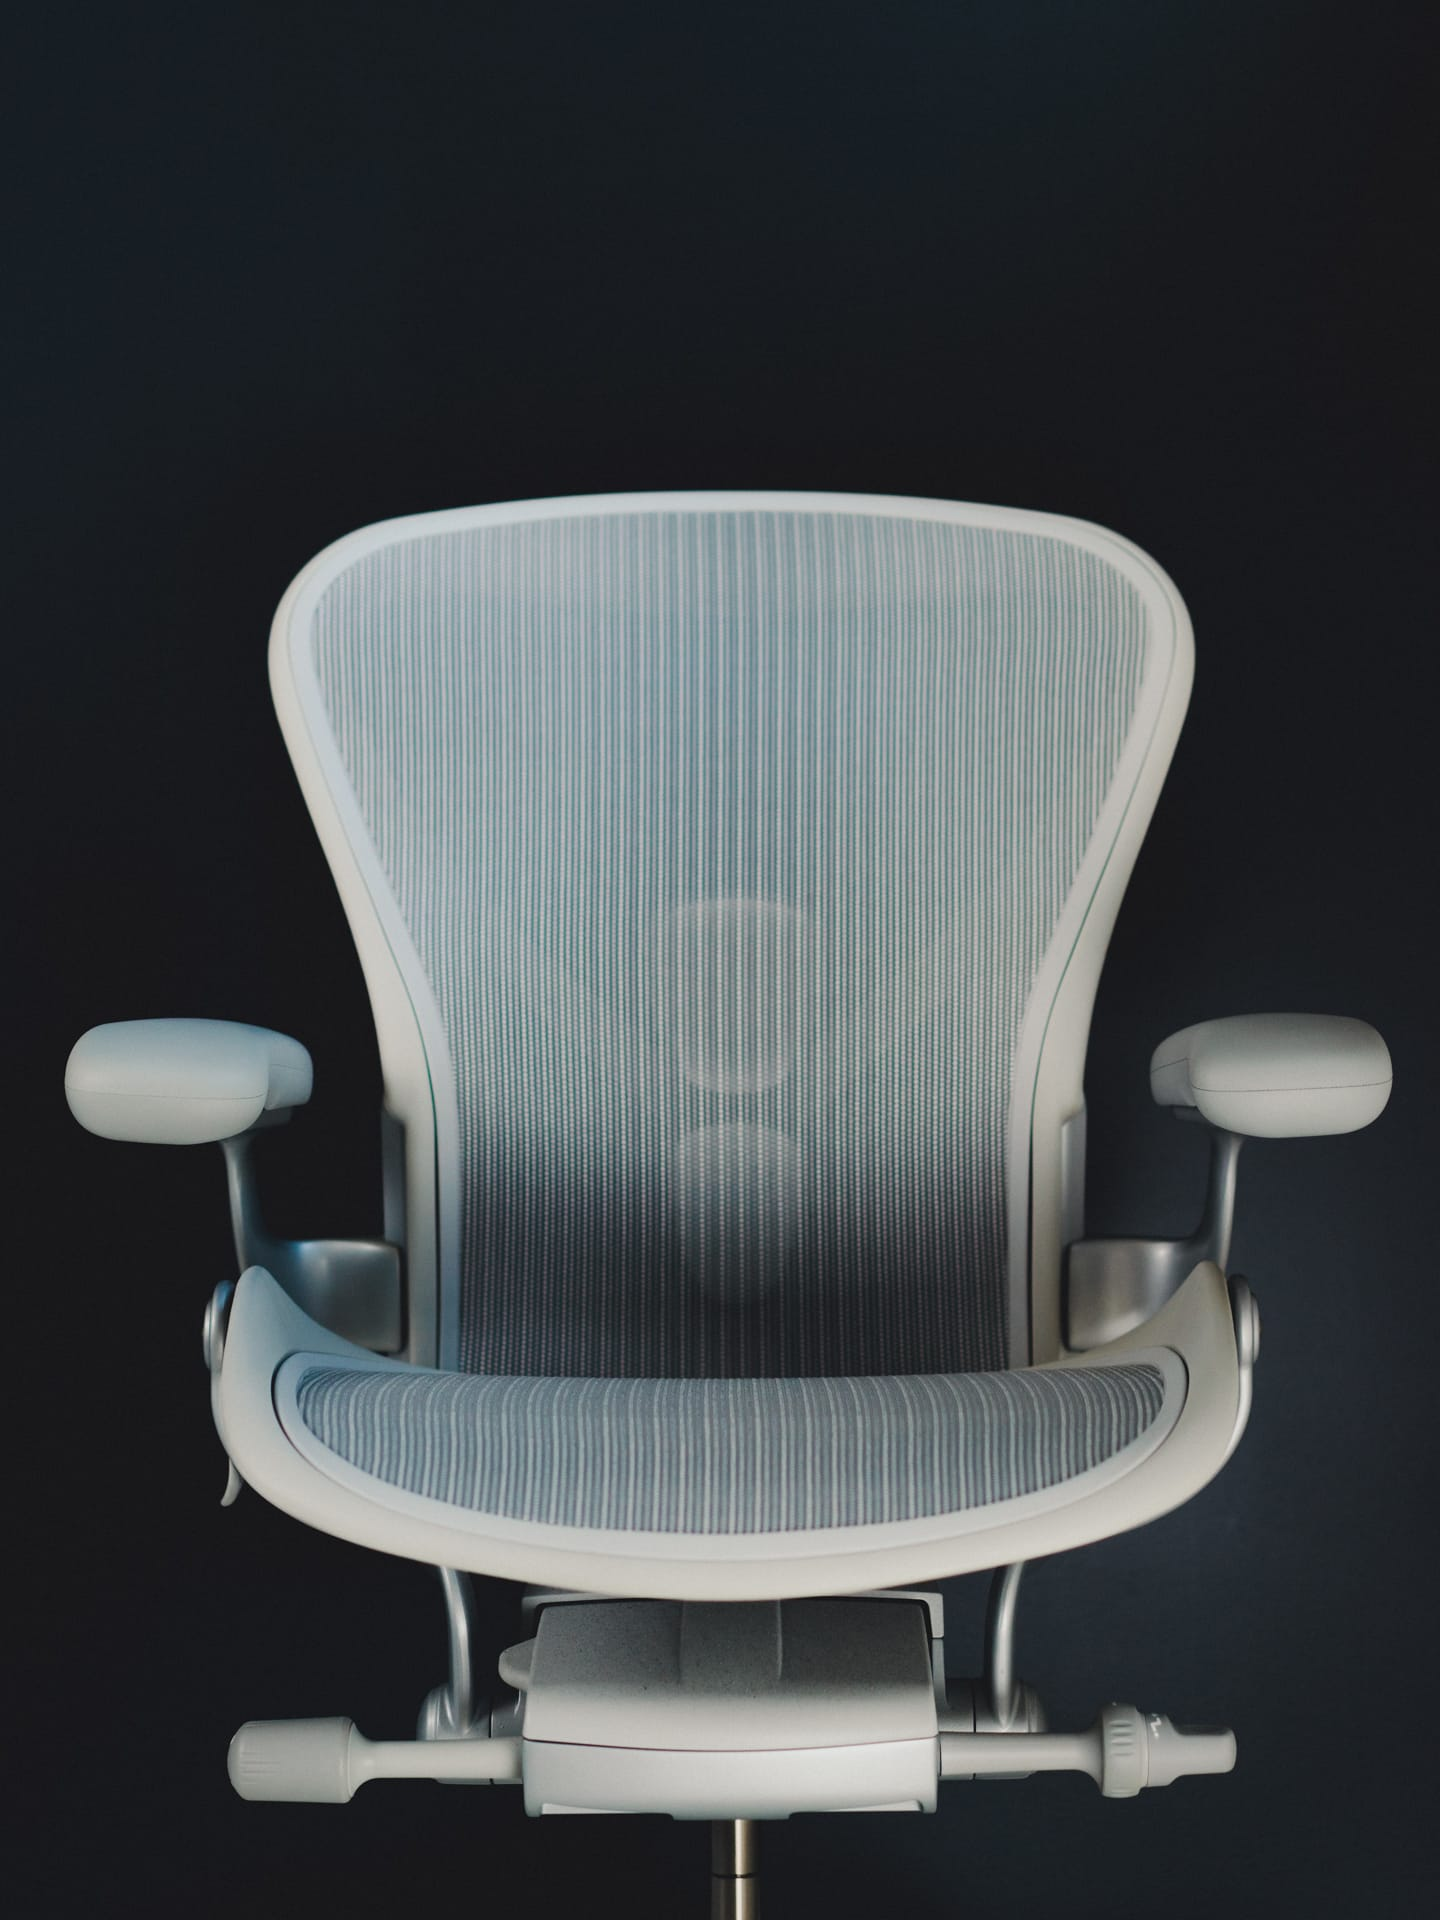 aeron hm posture adjustment and watch spine for chair ergonomics